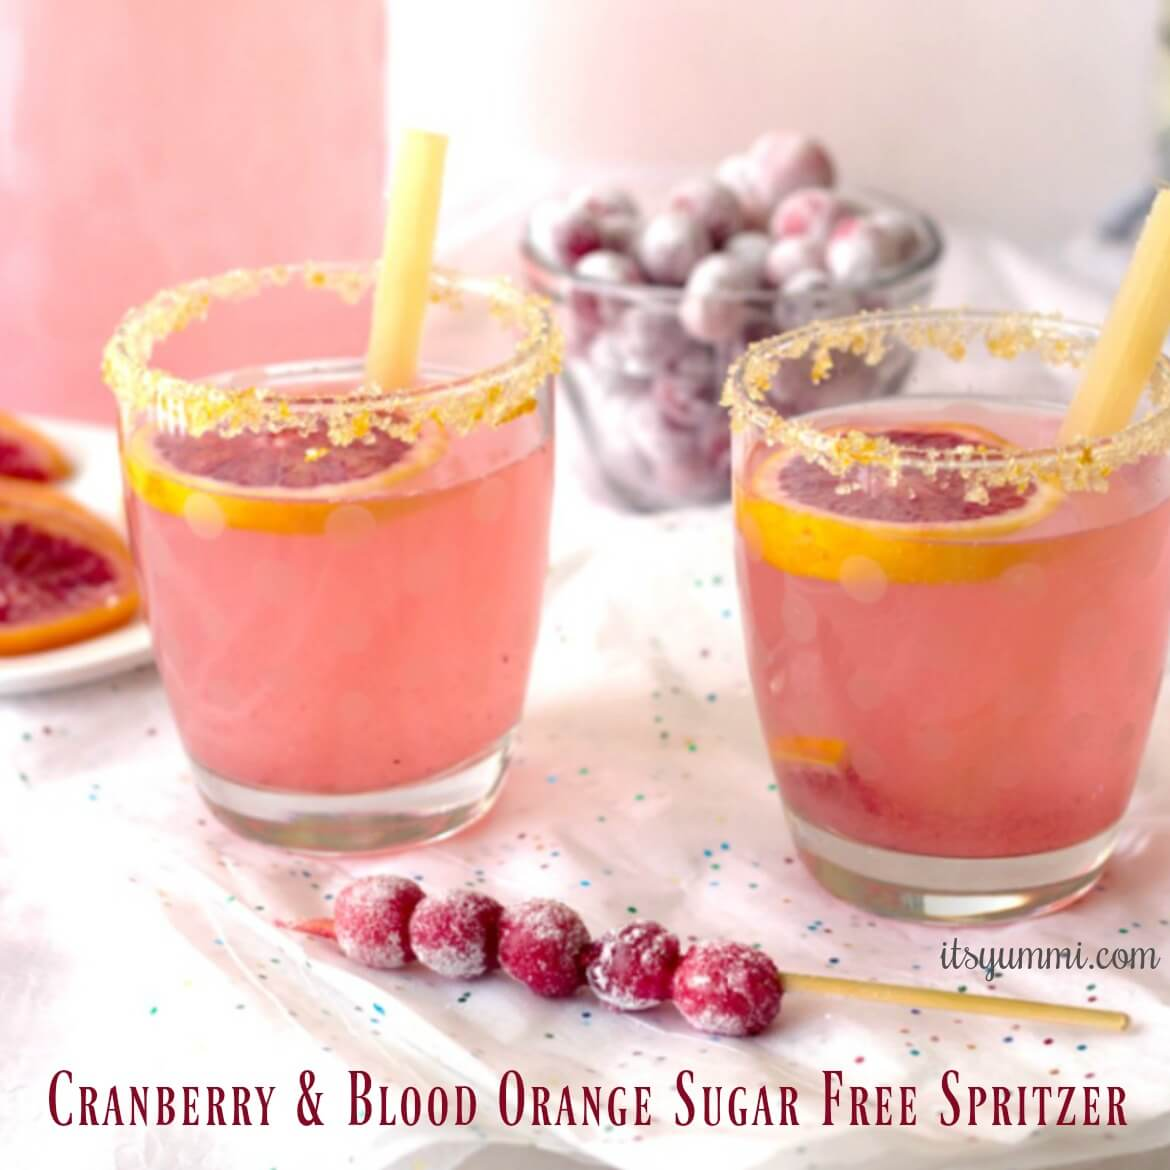 Cranberry-Blood Orange Sugar-Free Spritzer Recipe | It's Yummi